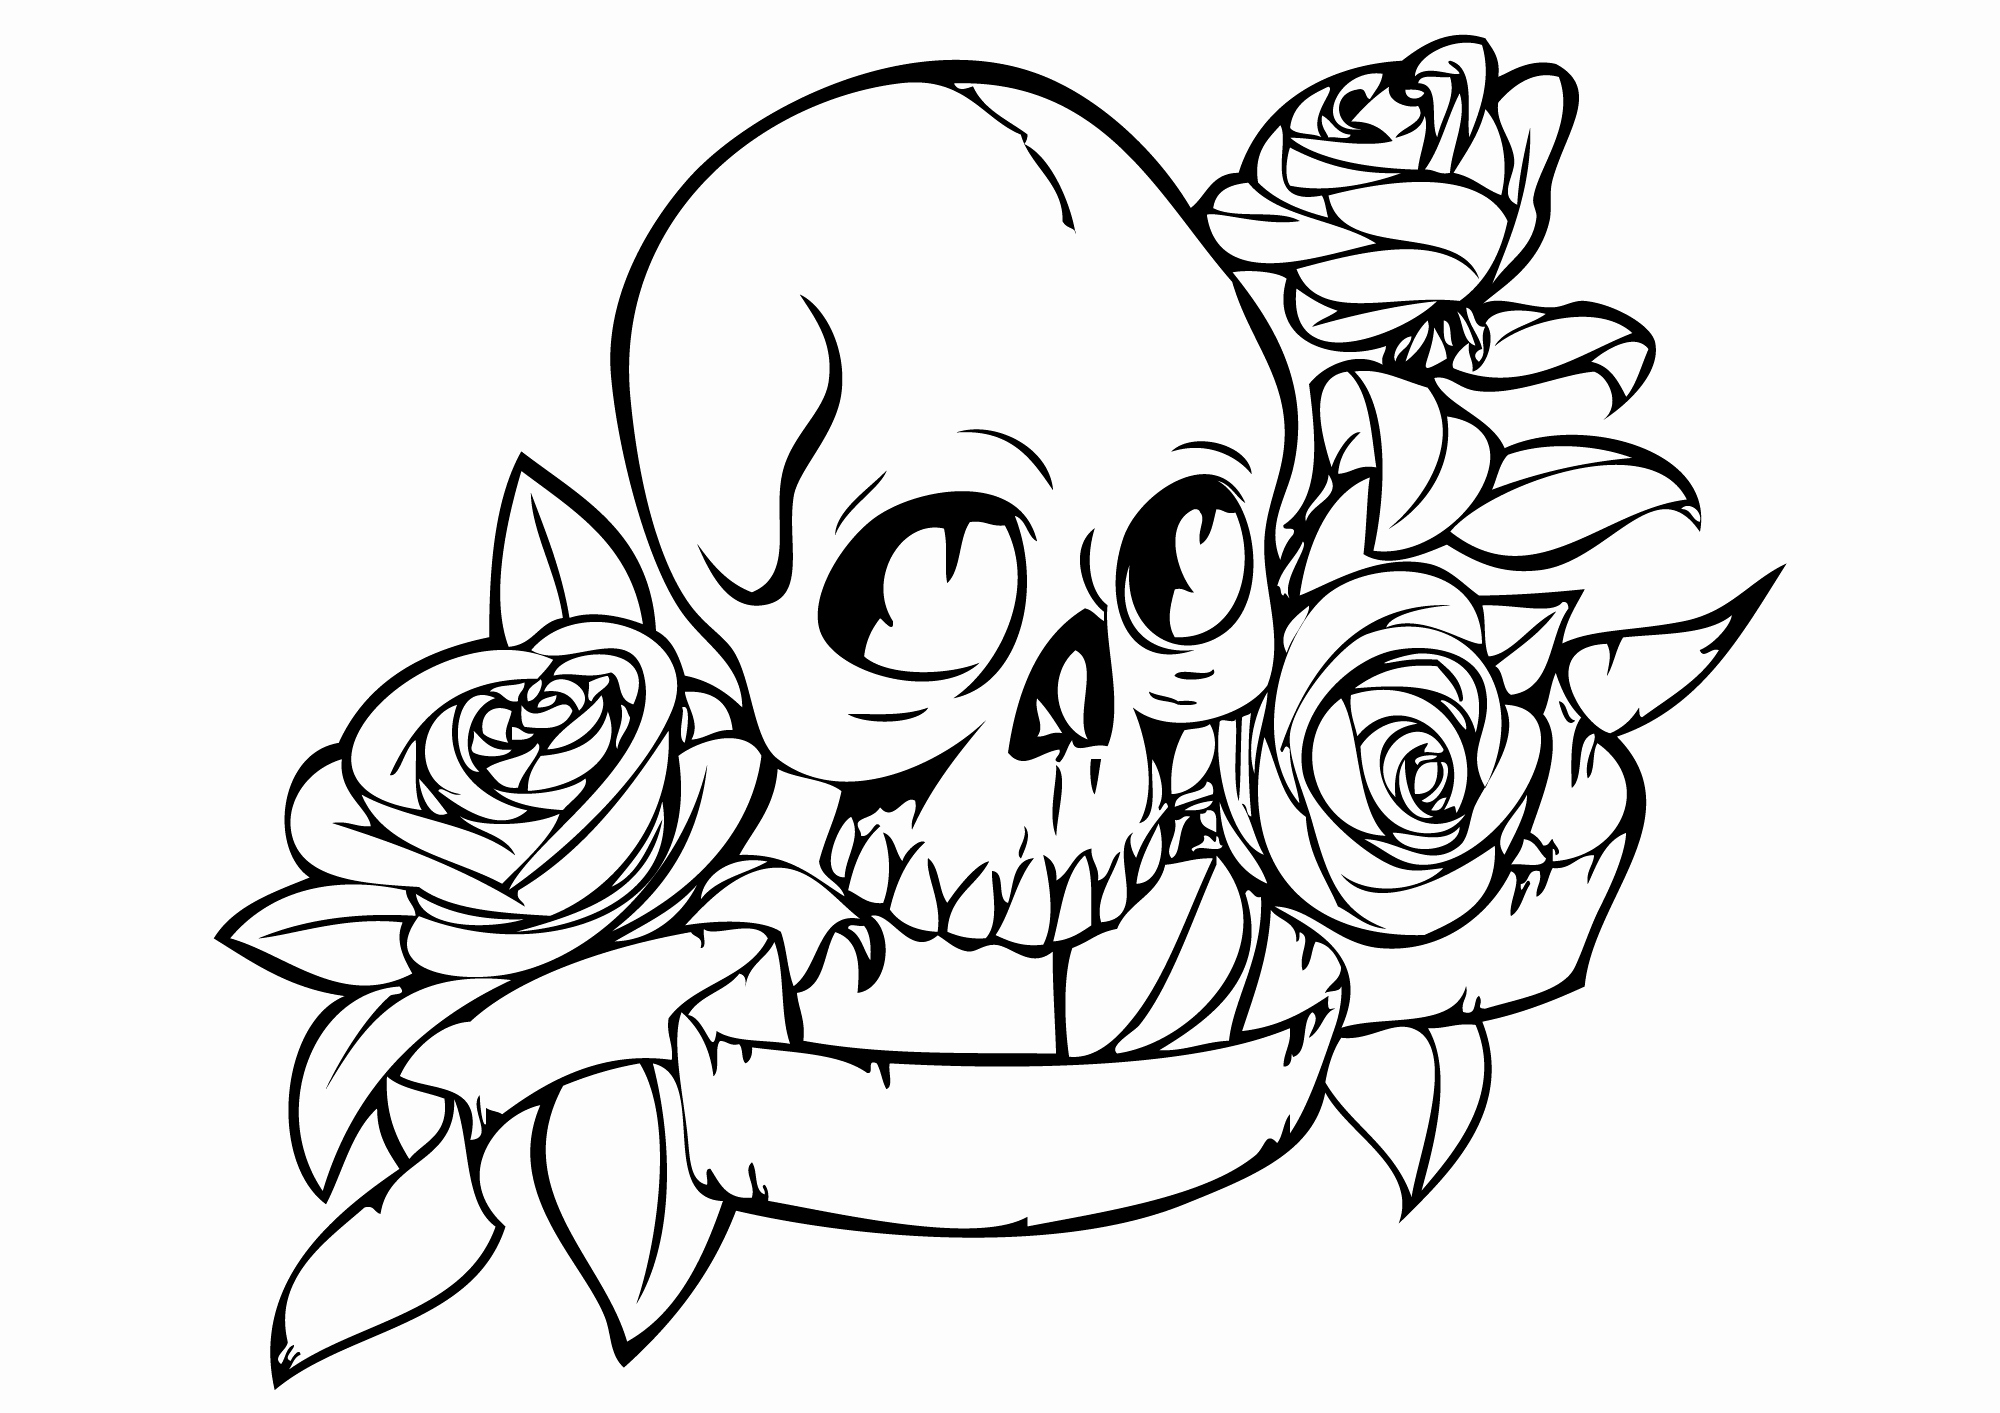 2000x1413 Skull And Crossbones Coloring Page Inspirational Skull And Rose